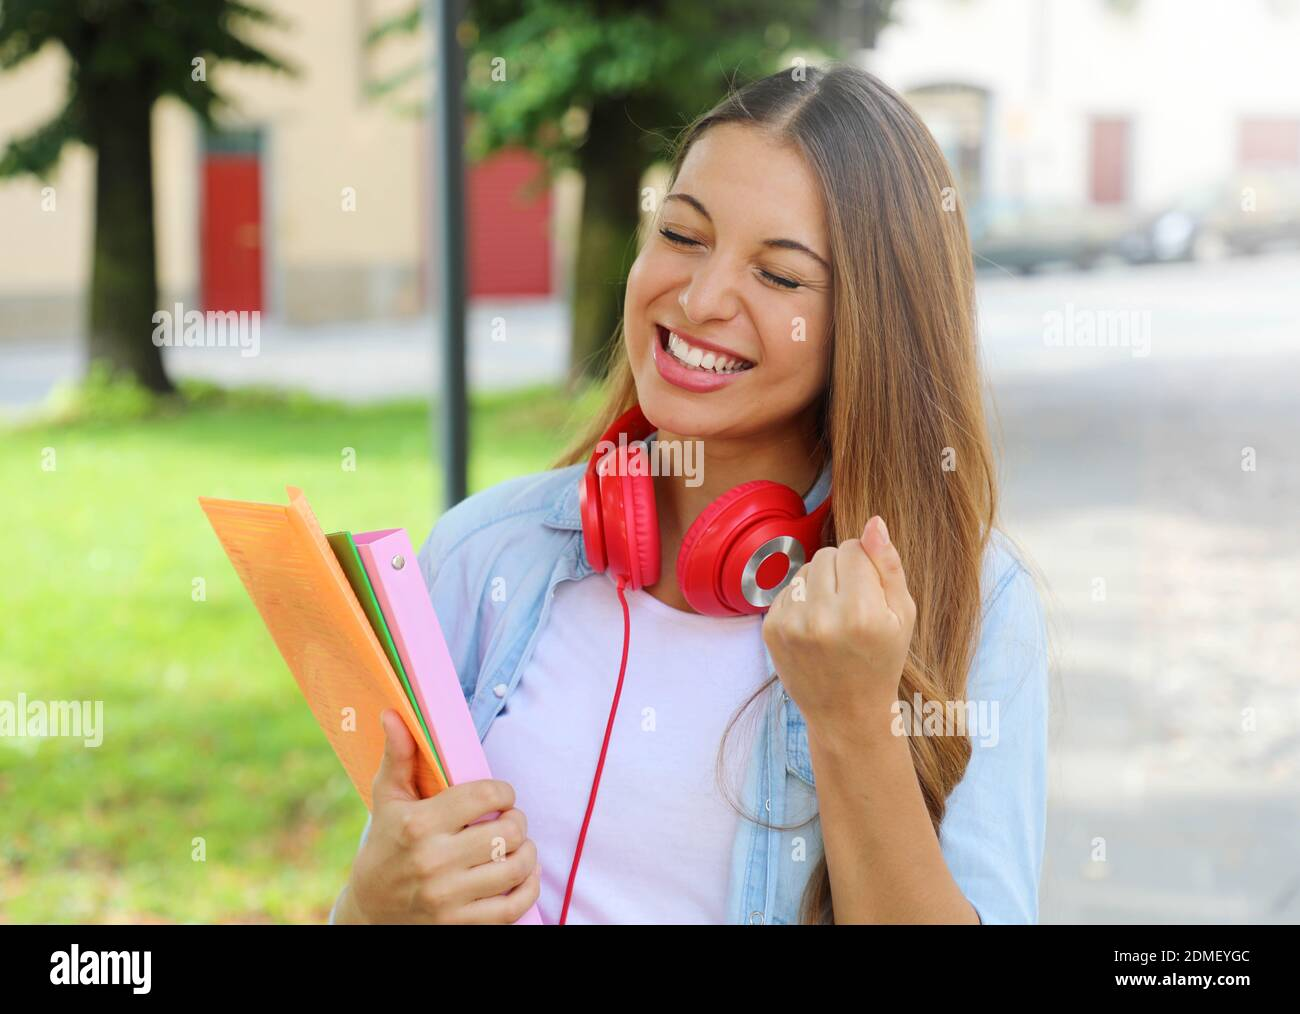 Smiling Young Woman Celebrating While Standing Outdoors Stock Photo